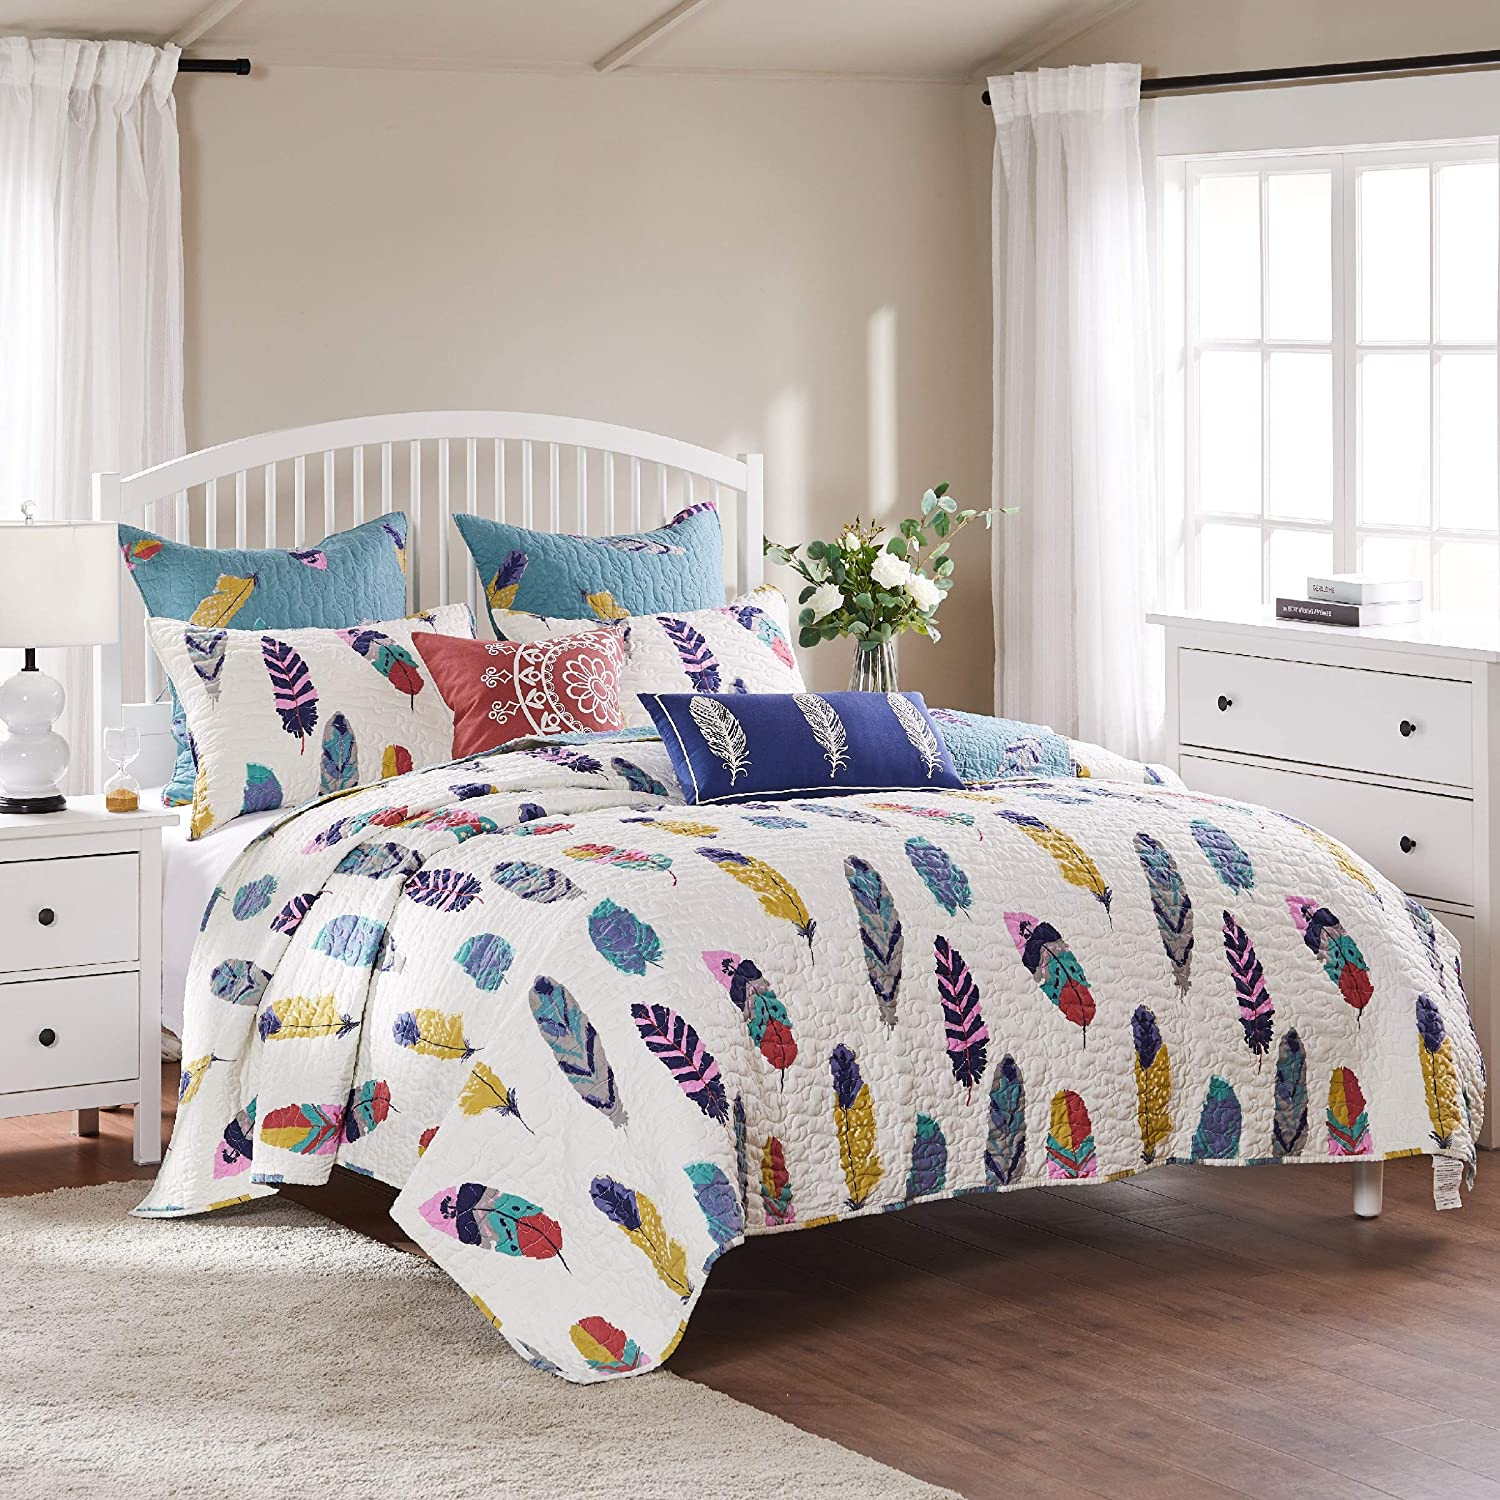 Greenland Home Dream Catcher Quilt Set, 5-Piece King/Cal King, Multi